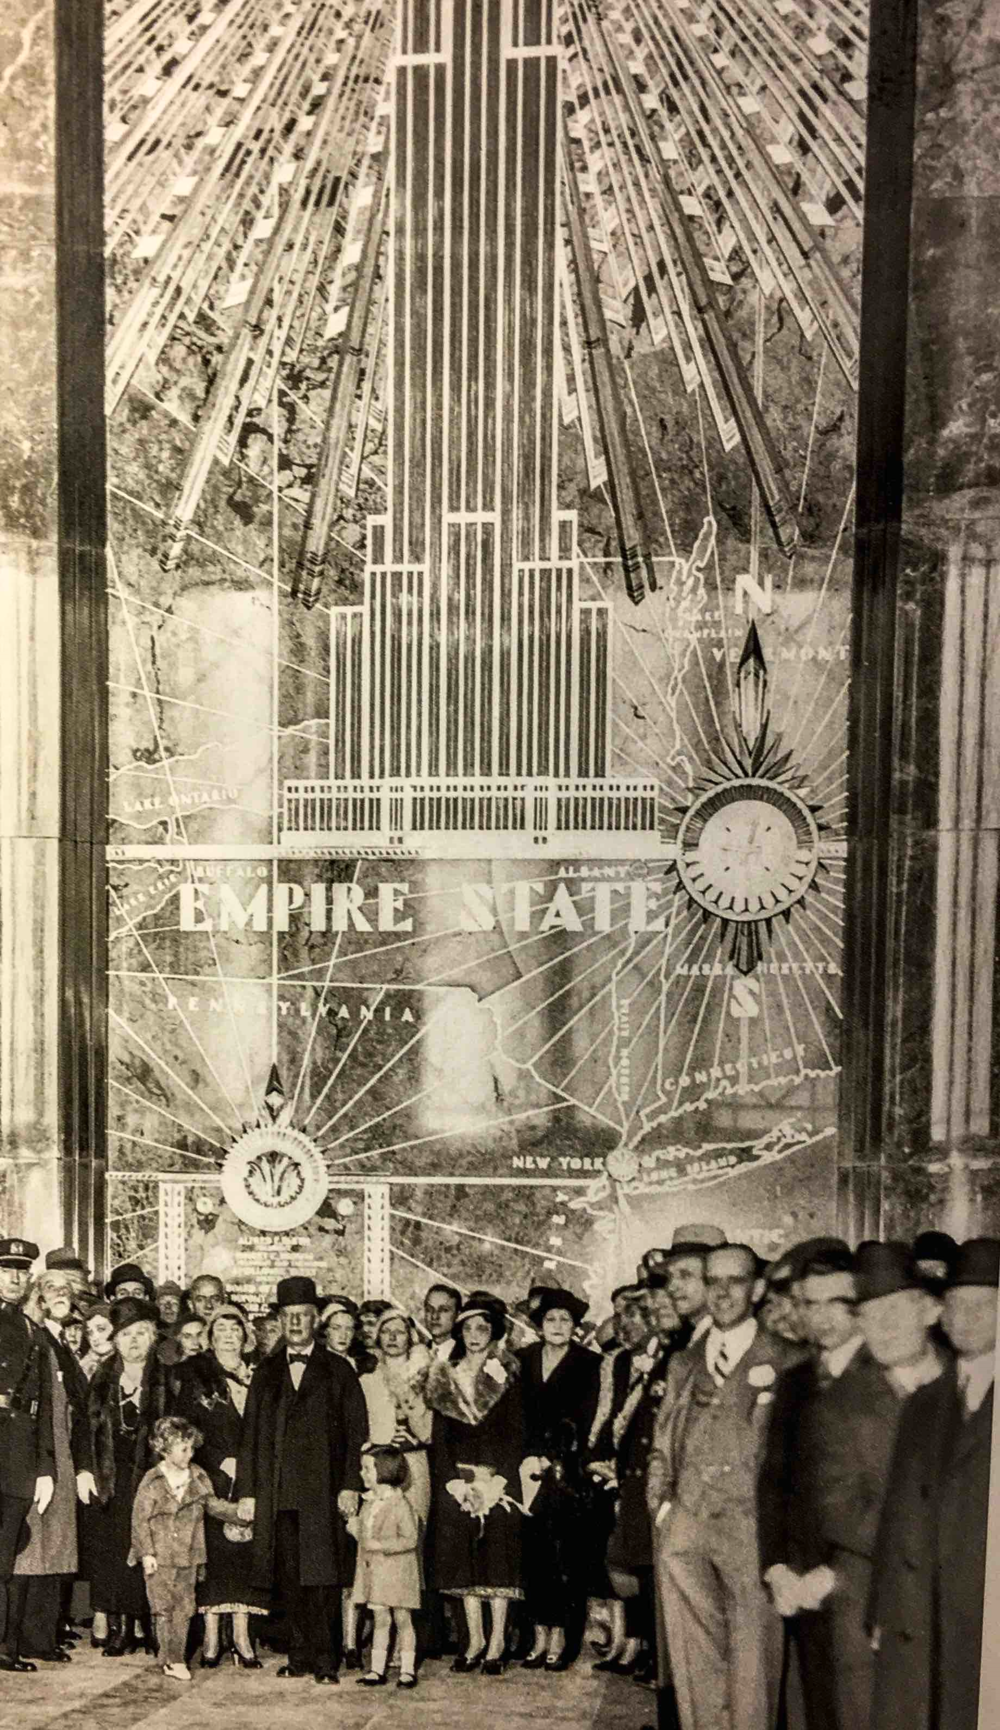 May 1, 1930 – The Empire State Building Opening Day (Image:NYPL)